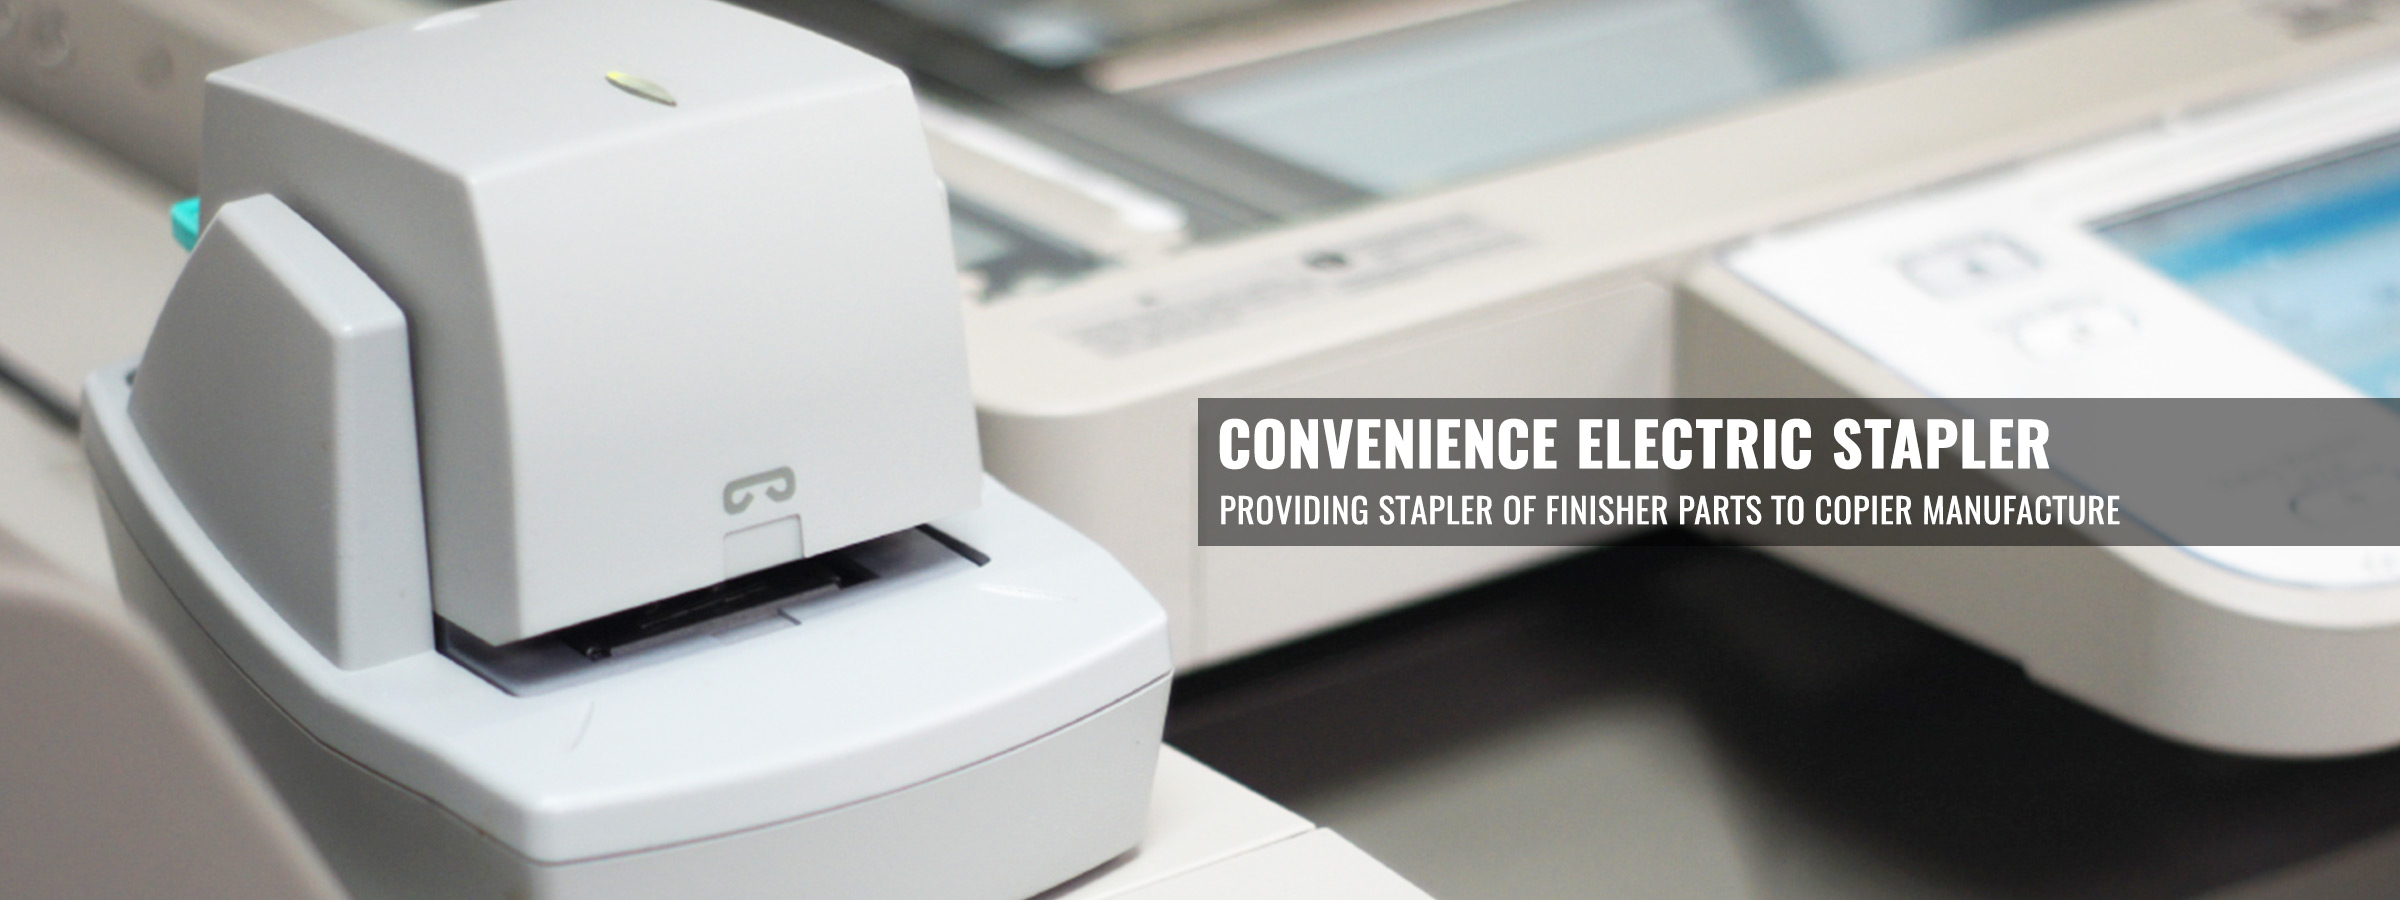 Convenience Electric Stapler